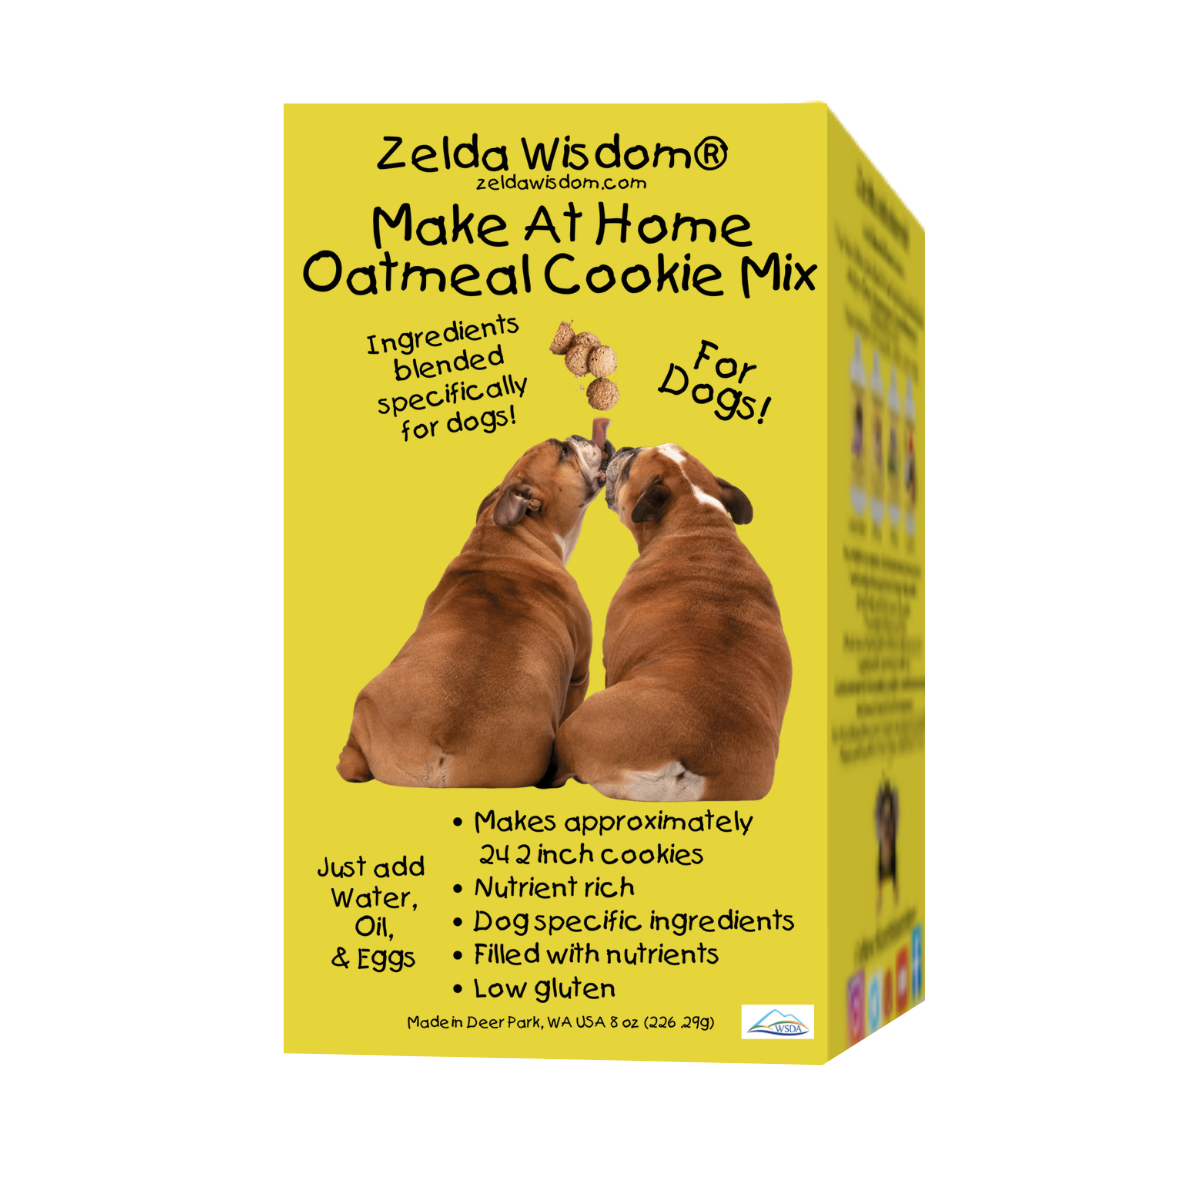 Bake At Home Oatmeal Cookie Mix For Dogs, All Natural with Healthy Ingredients